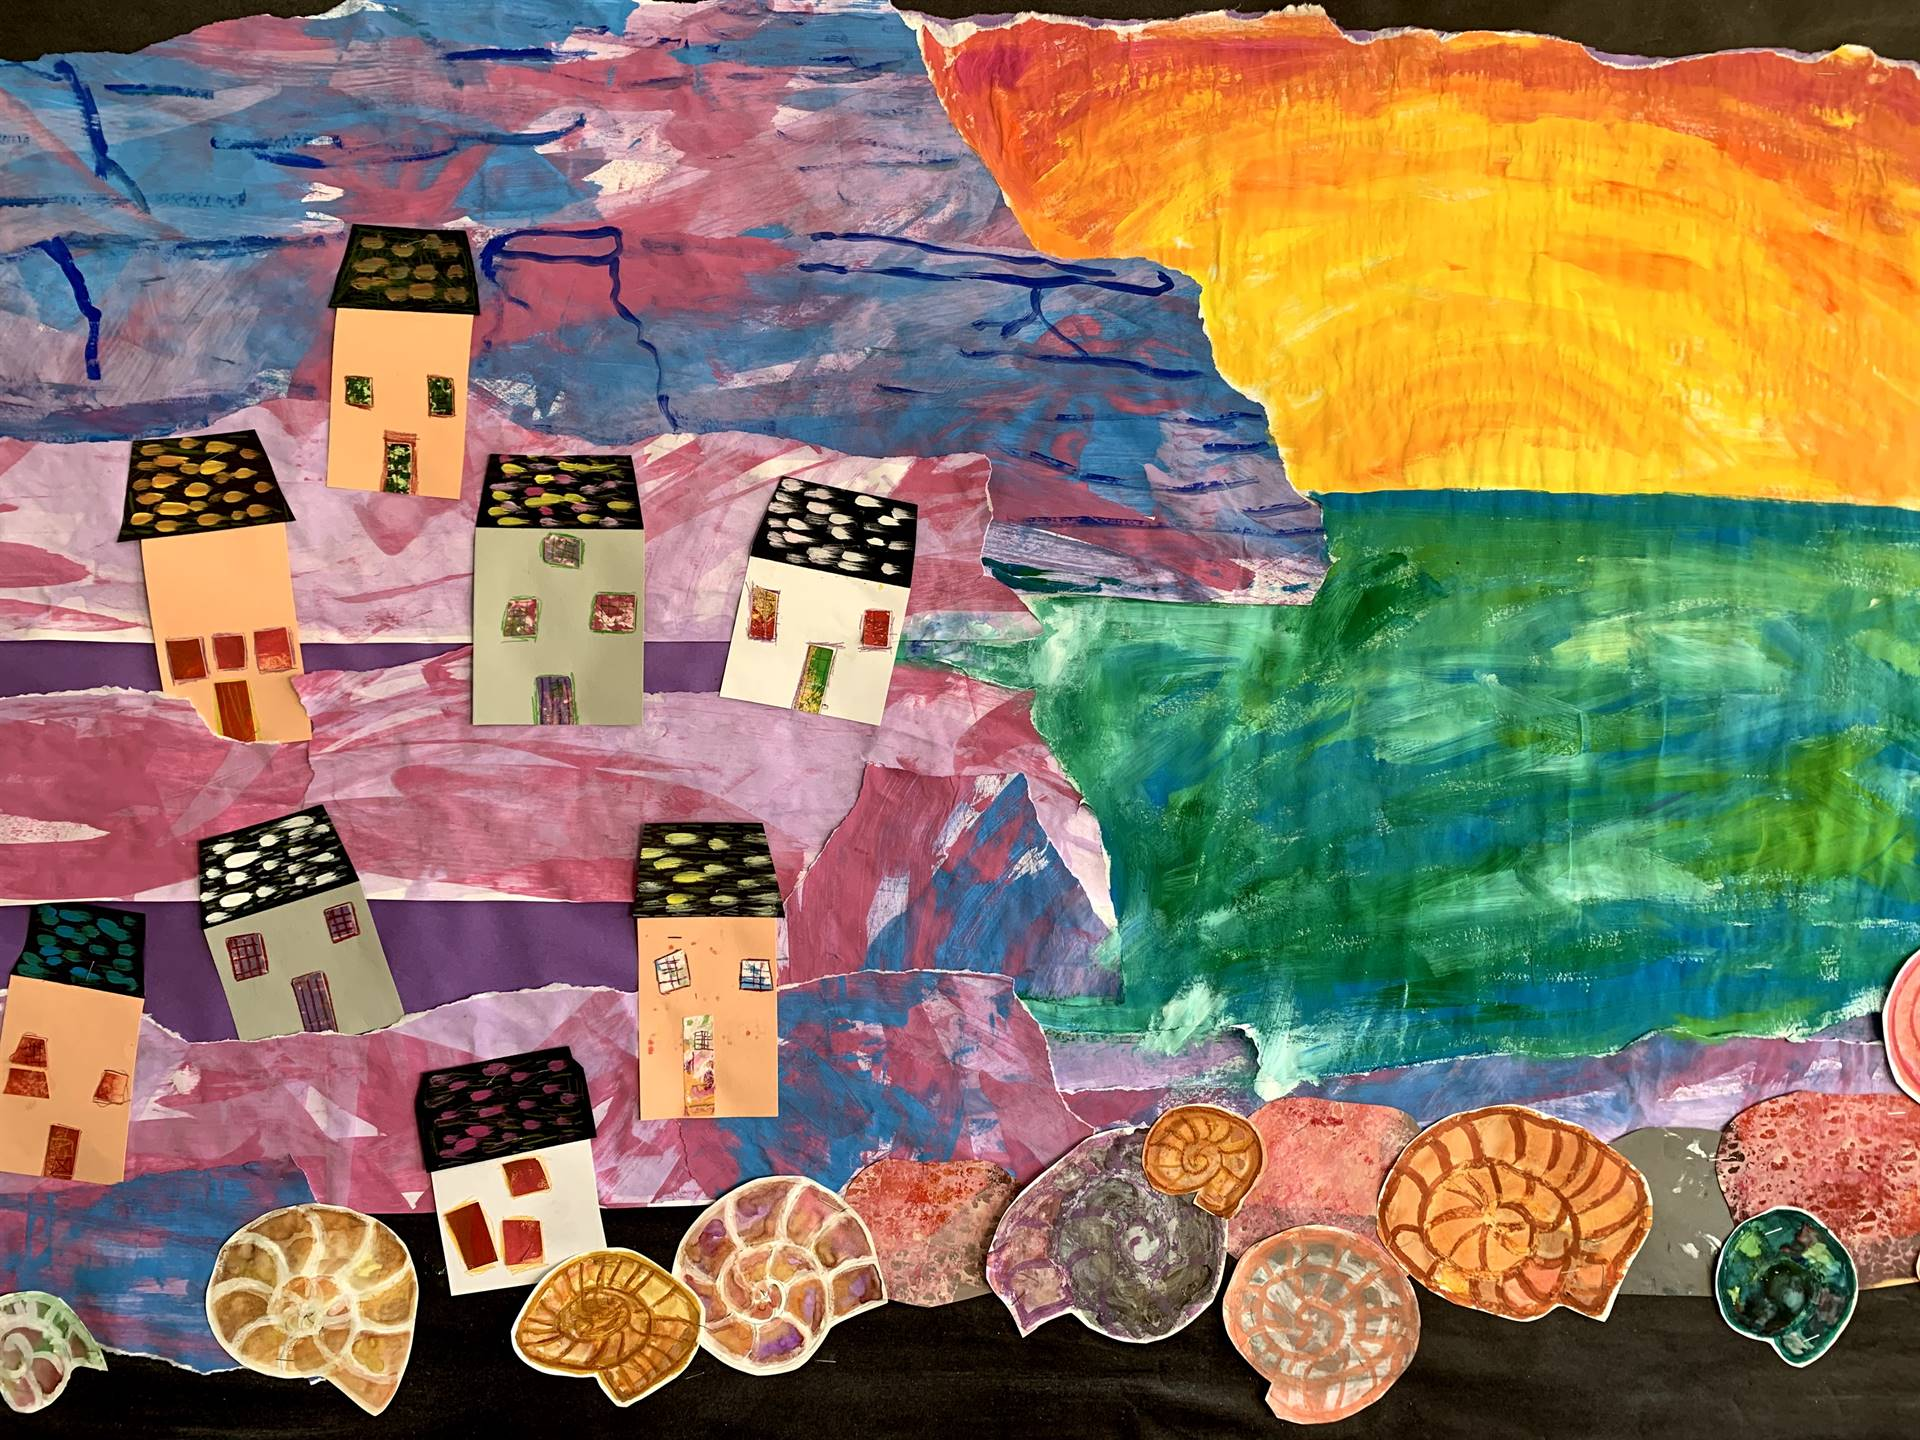 Student artwork inspired by Mary Anning